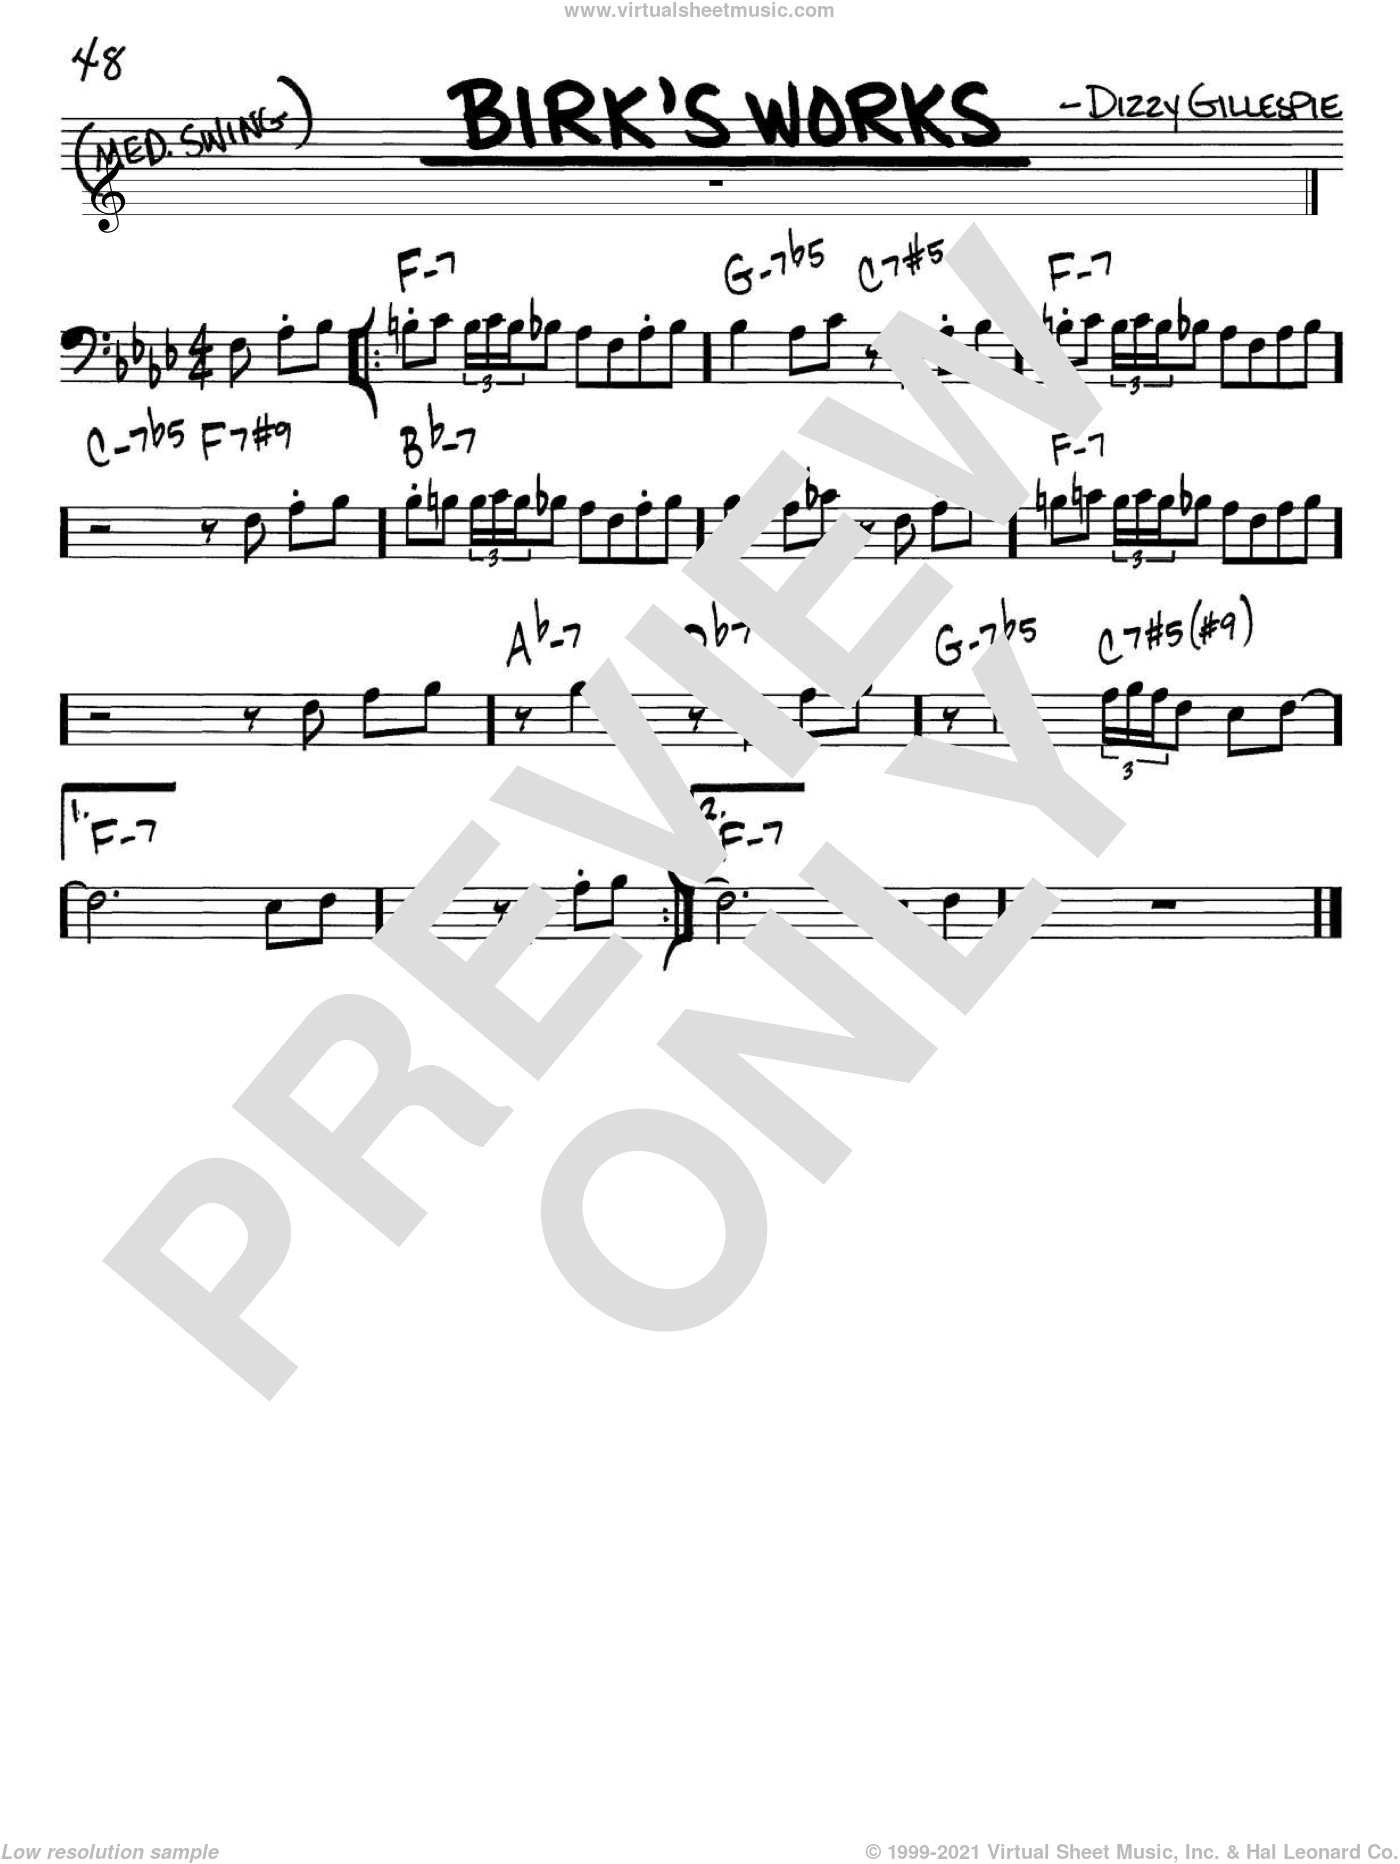 Birk's Works sheet music for voice and other instruments (bass clef) by Dizzy Gillespie, intermediate skill level